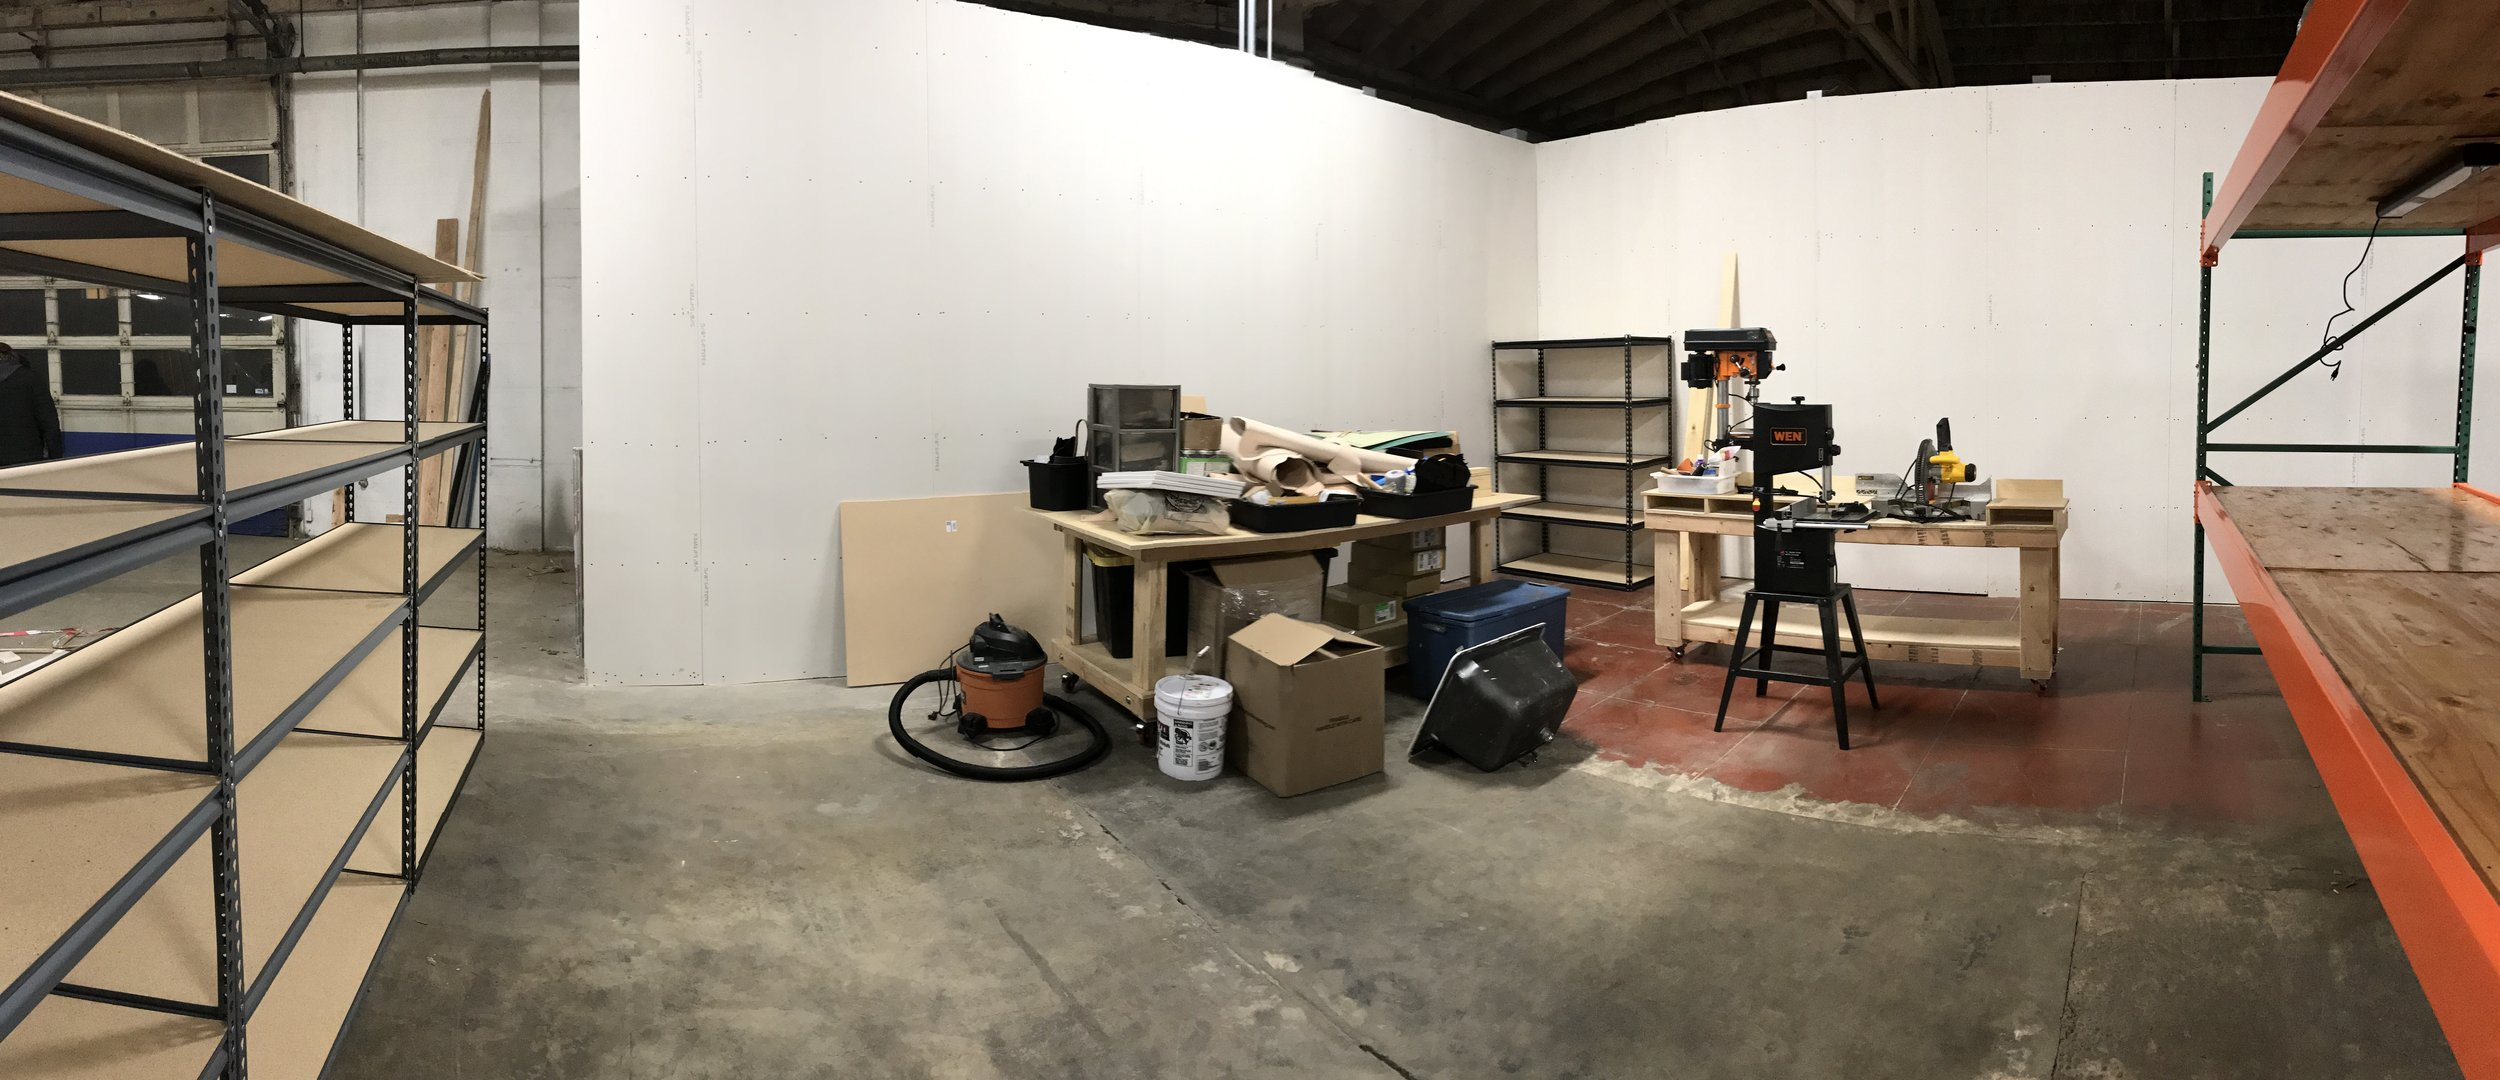 We're moved into ADX! Time to stock the shelves.